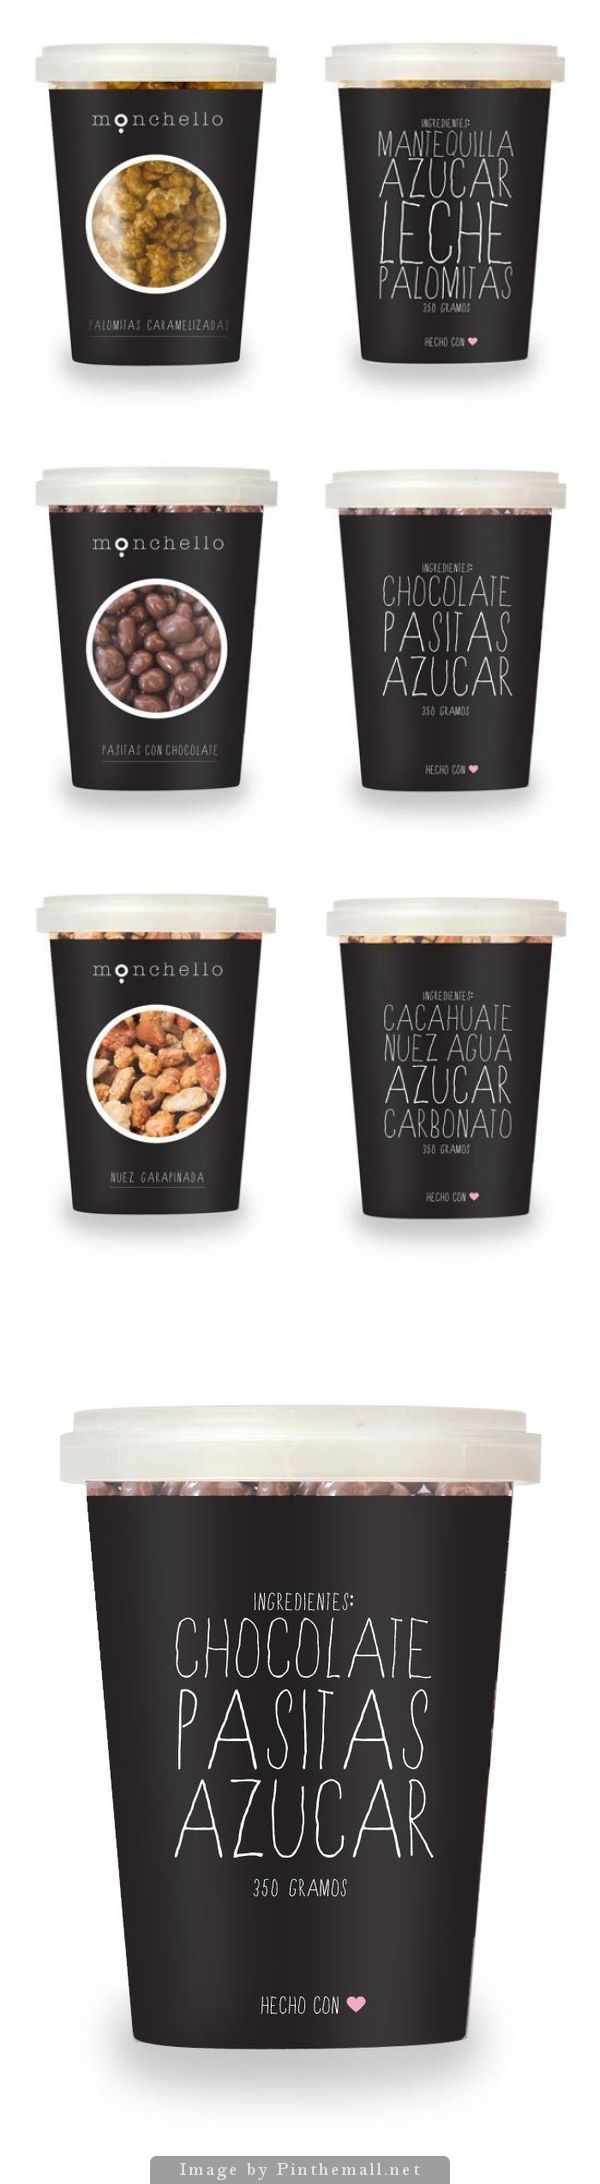 MONCHELLO packaging design for a line of home-made gourmet snacks.